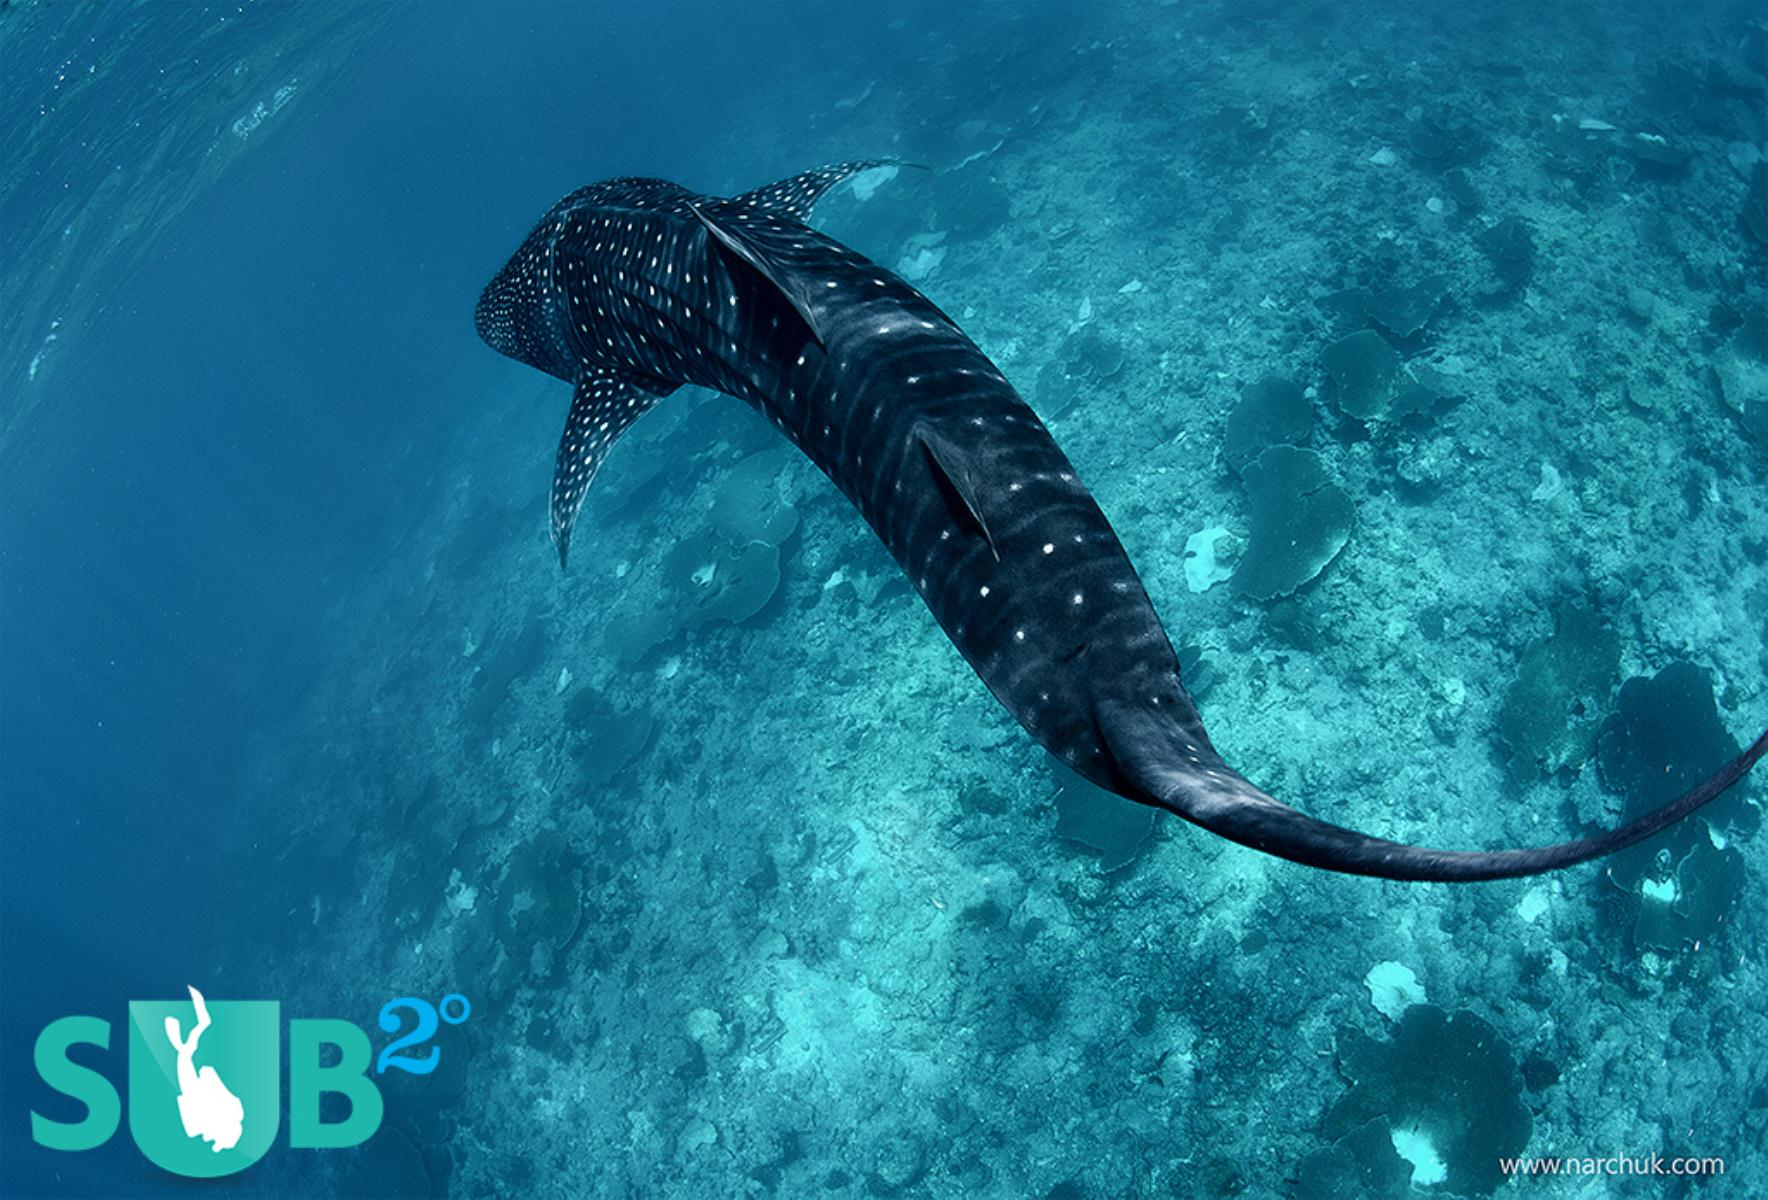 I would love to be swimming alongside this whale shark